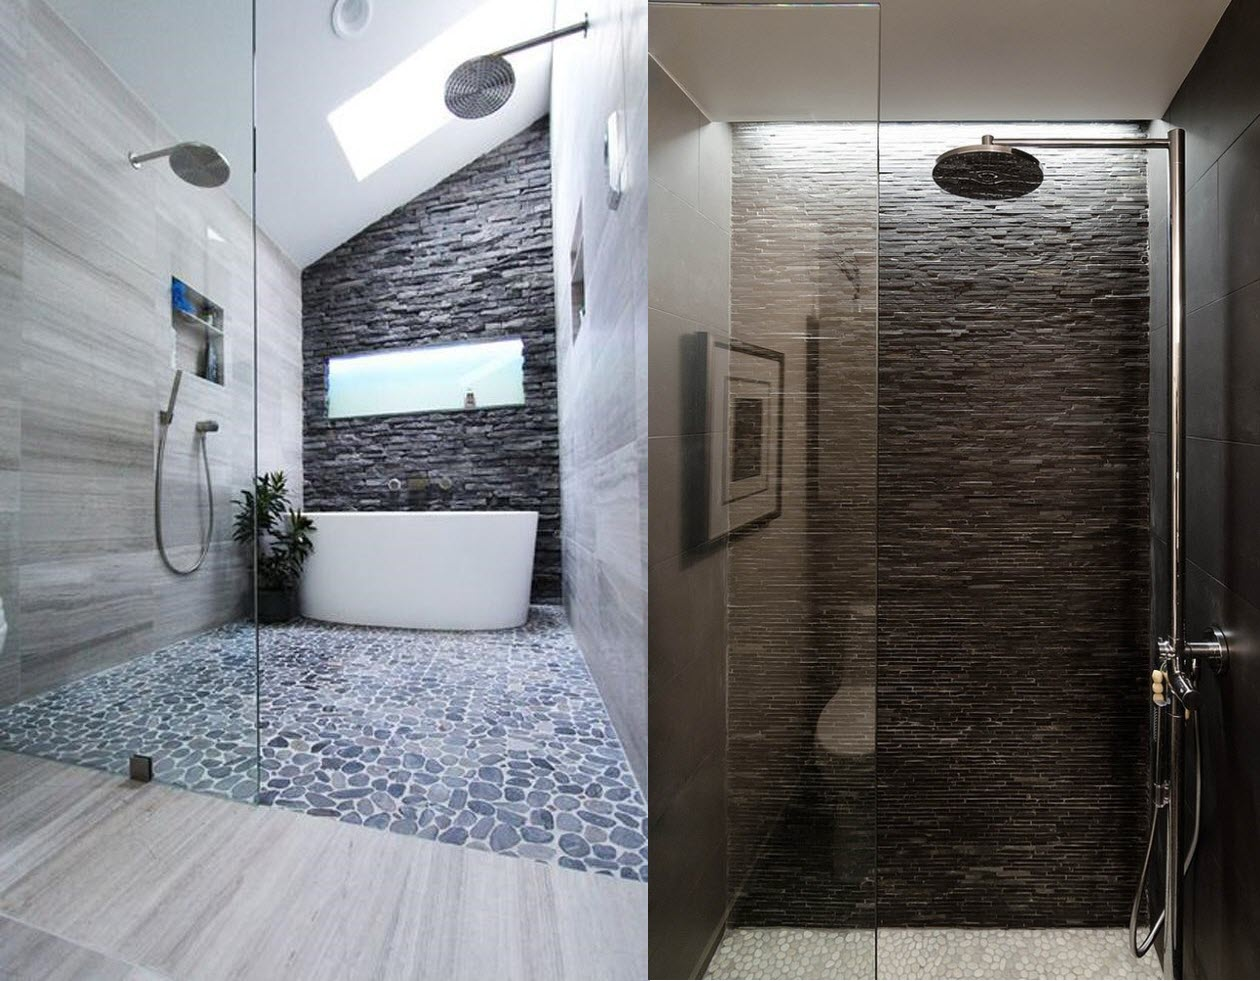 6 Best Tiles to Use for Bathroom Floors and Walls